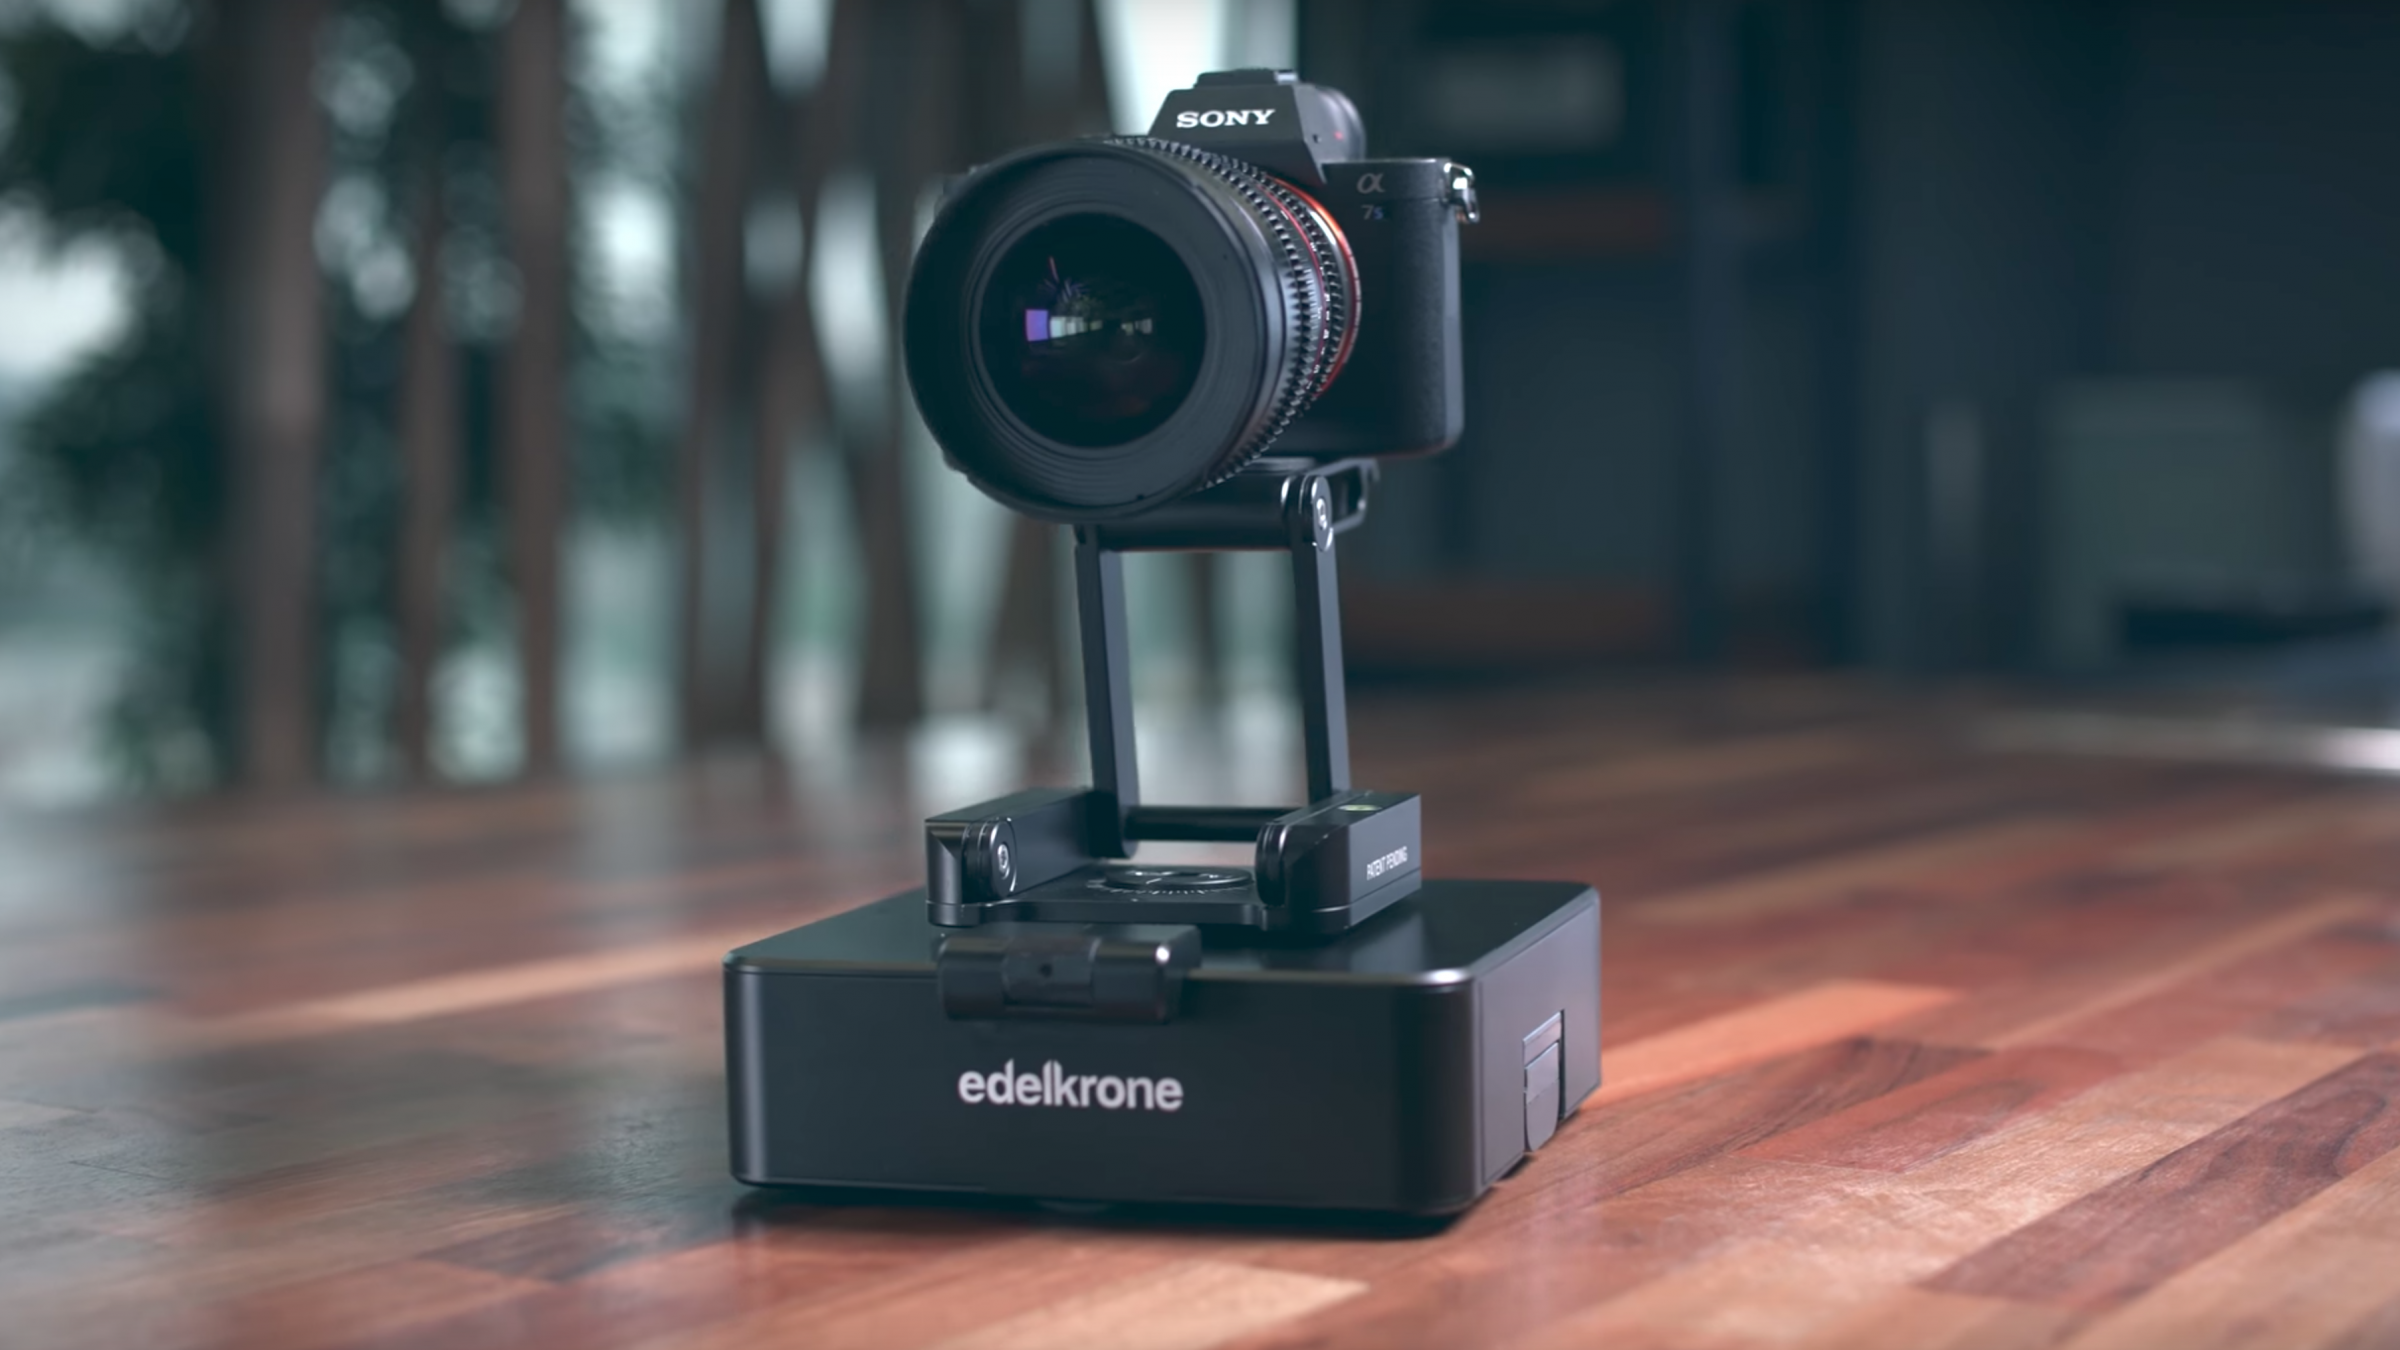 Edelkrone SurfaceONE Offers Affordable Dual Axis Motion Control